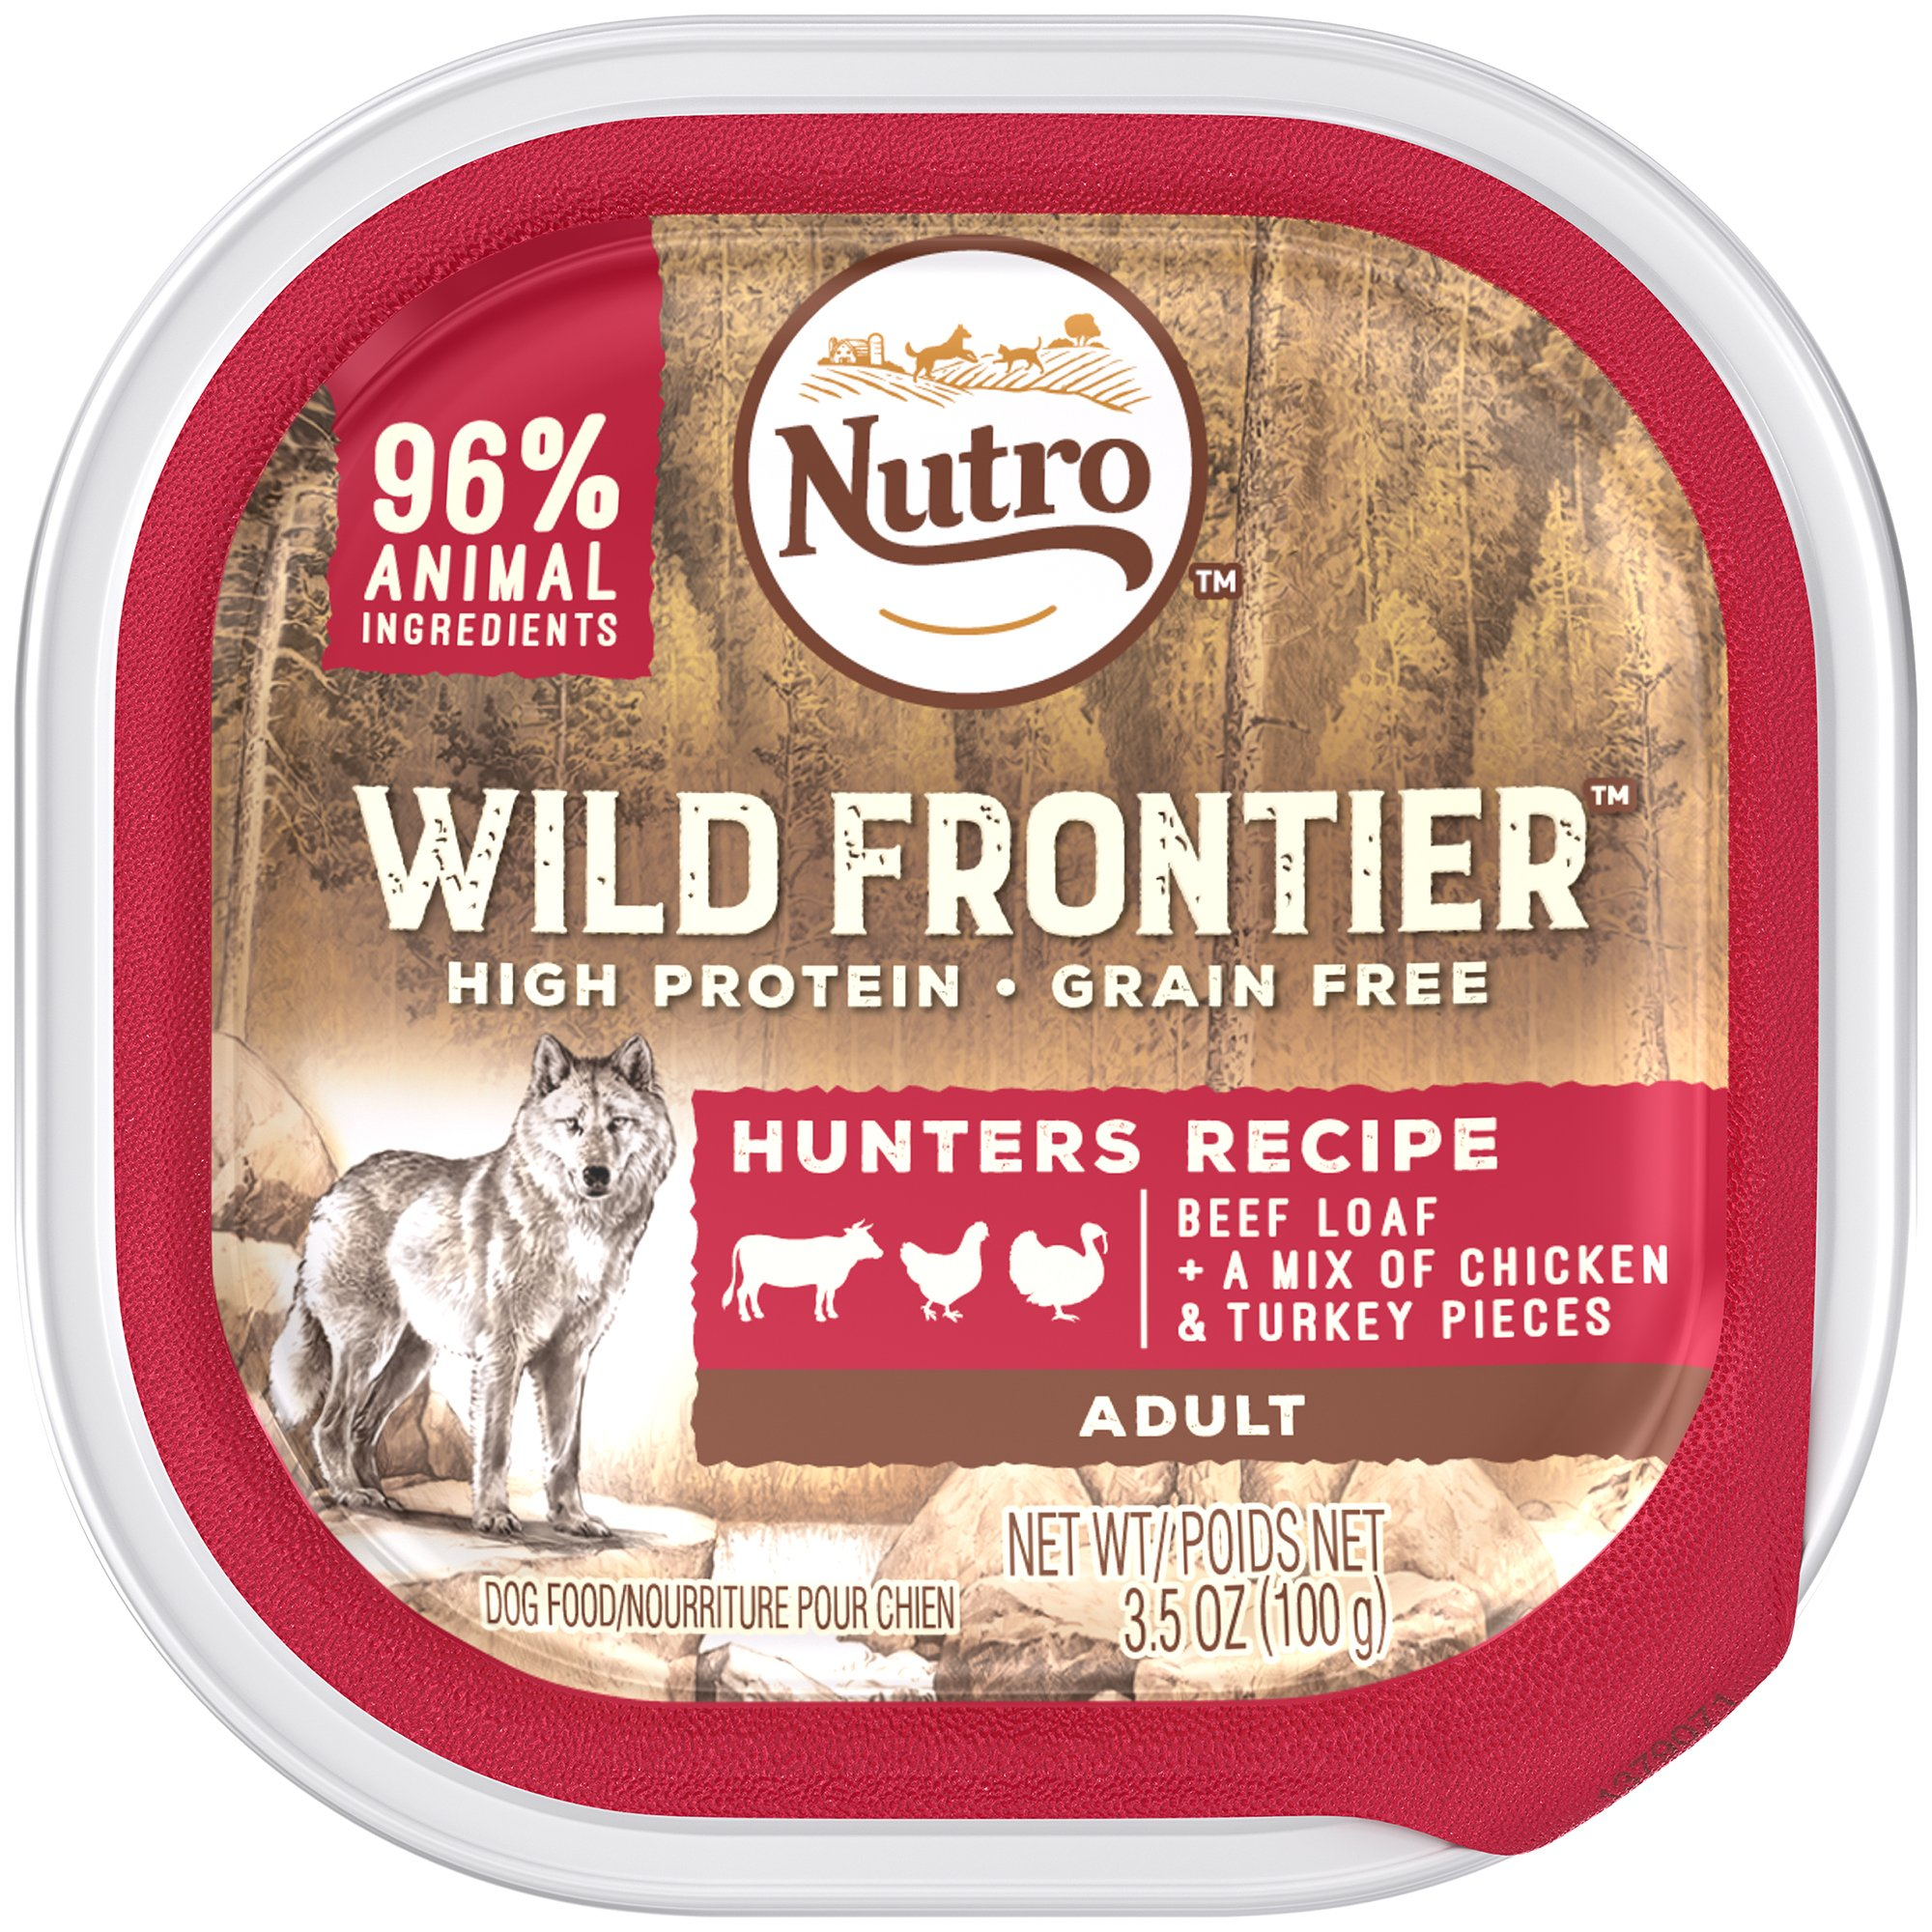 DISCONTINUED: NUTRO Wild Frontier Hunters Recipe Beef Loaf With a Mix of Chicken and Turkey Pieces Dog Food Trays 3.5 Ounces (Pack of 24) by Wild Frontier Wet Dog